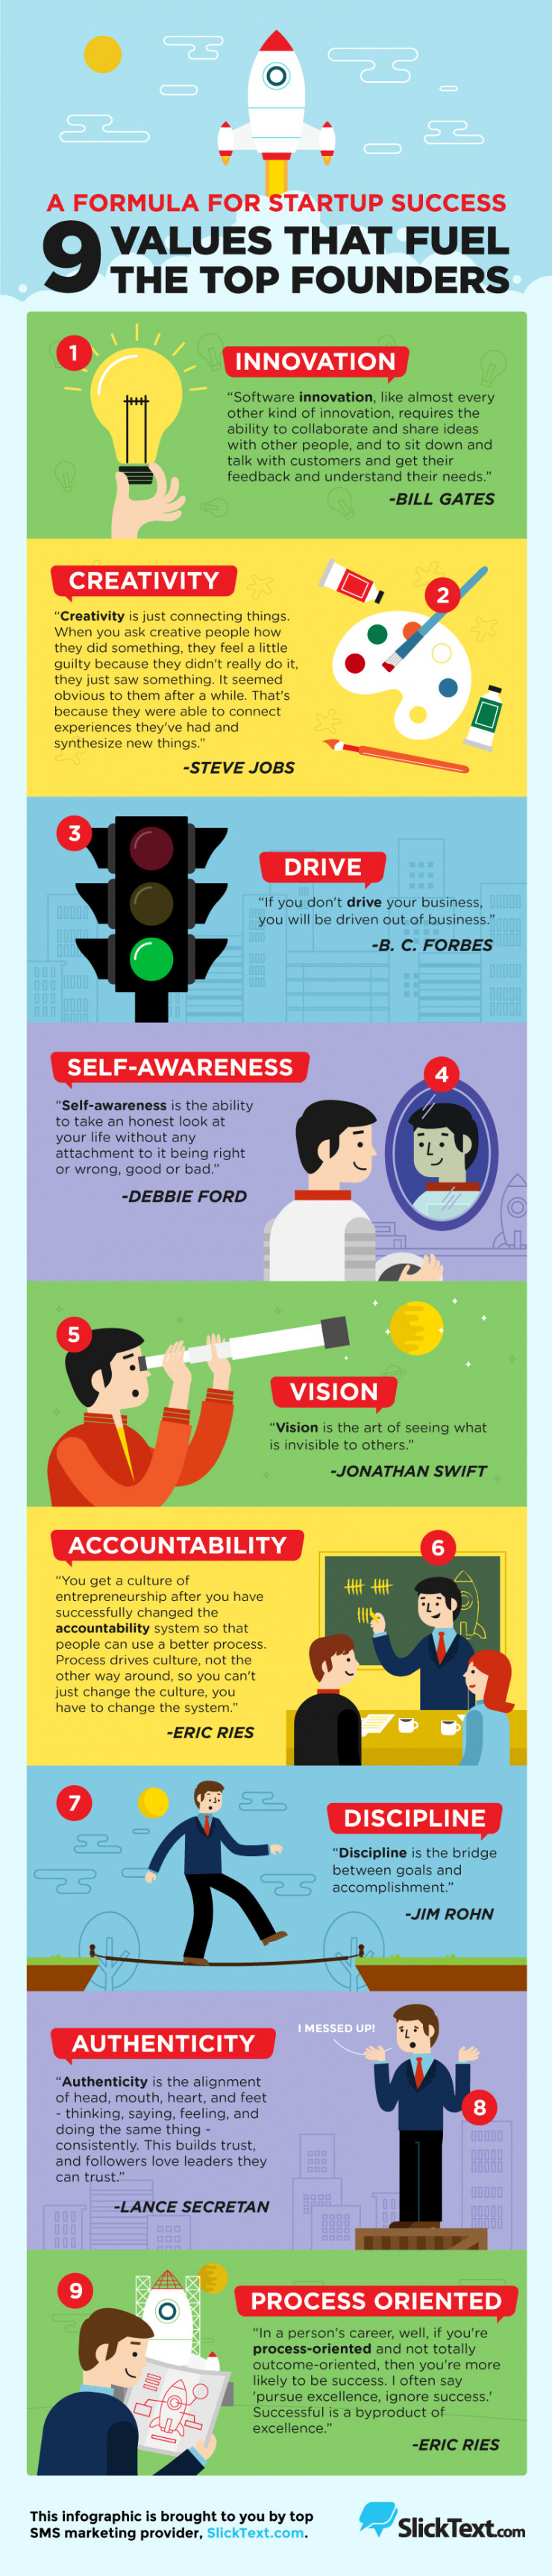 A Formula for Startup Success: 9 Values That Fuel the Top Founders